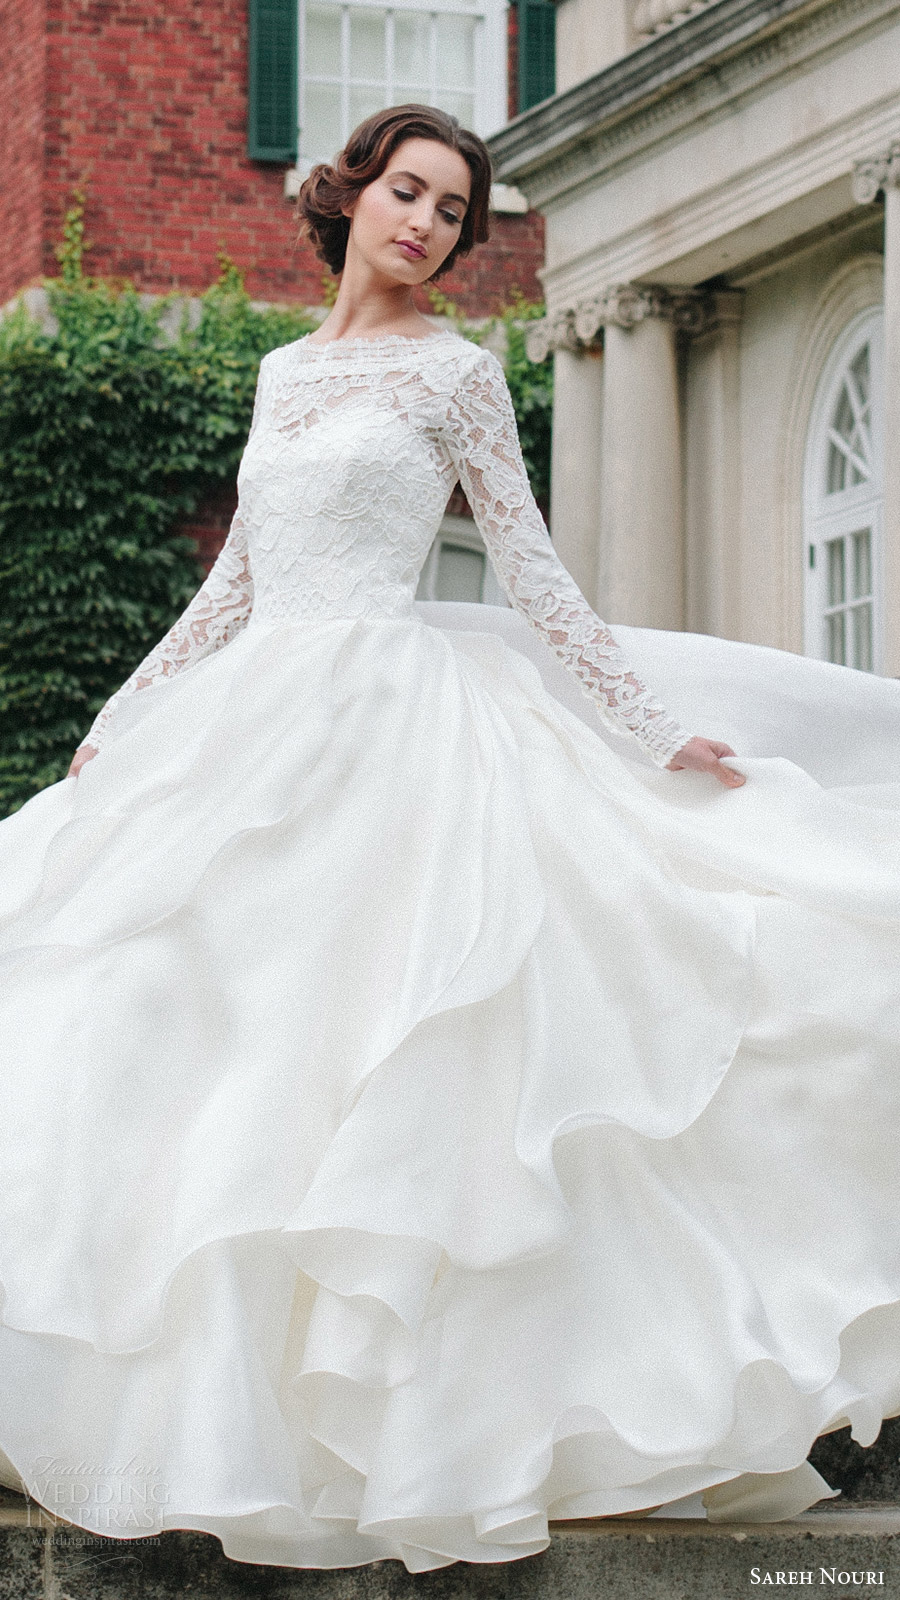 sareh nouri bridal fall 2016 long sleeves sweetheart illusion jewel neck a line ball gown wedding dress (mona lisa) fv elegant romantic